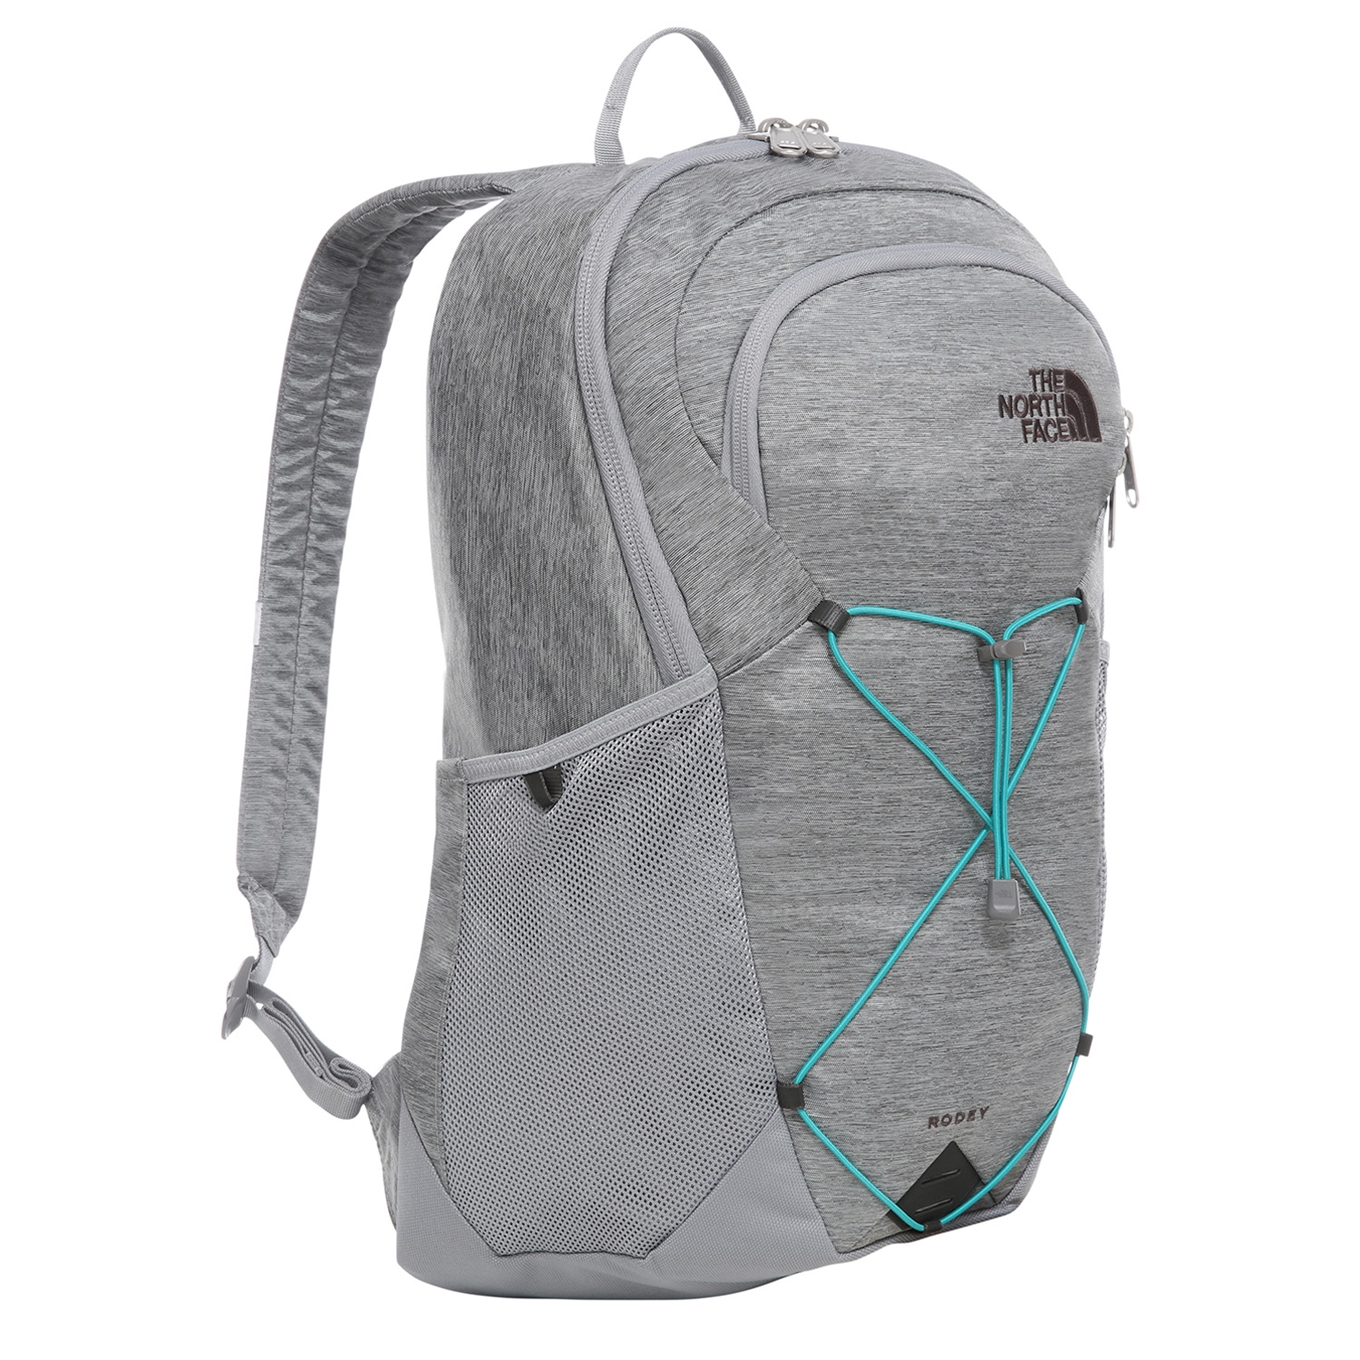 The North Face Rodey Backpack mid grey dark heather / fanfare green backpack